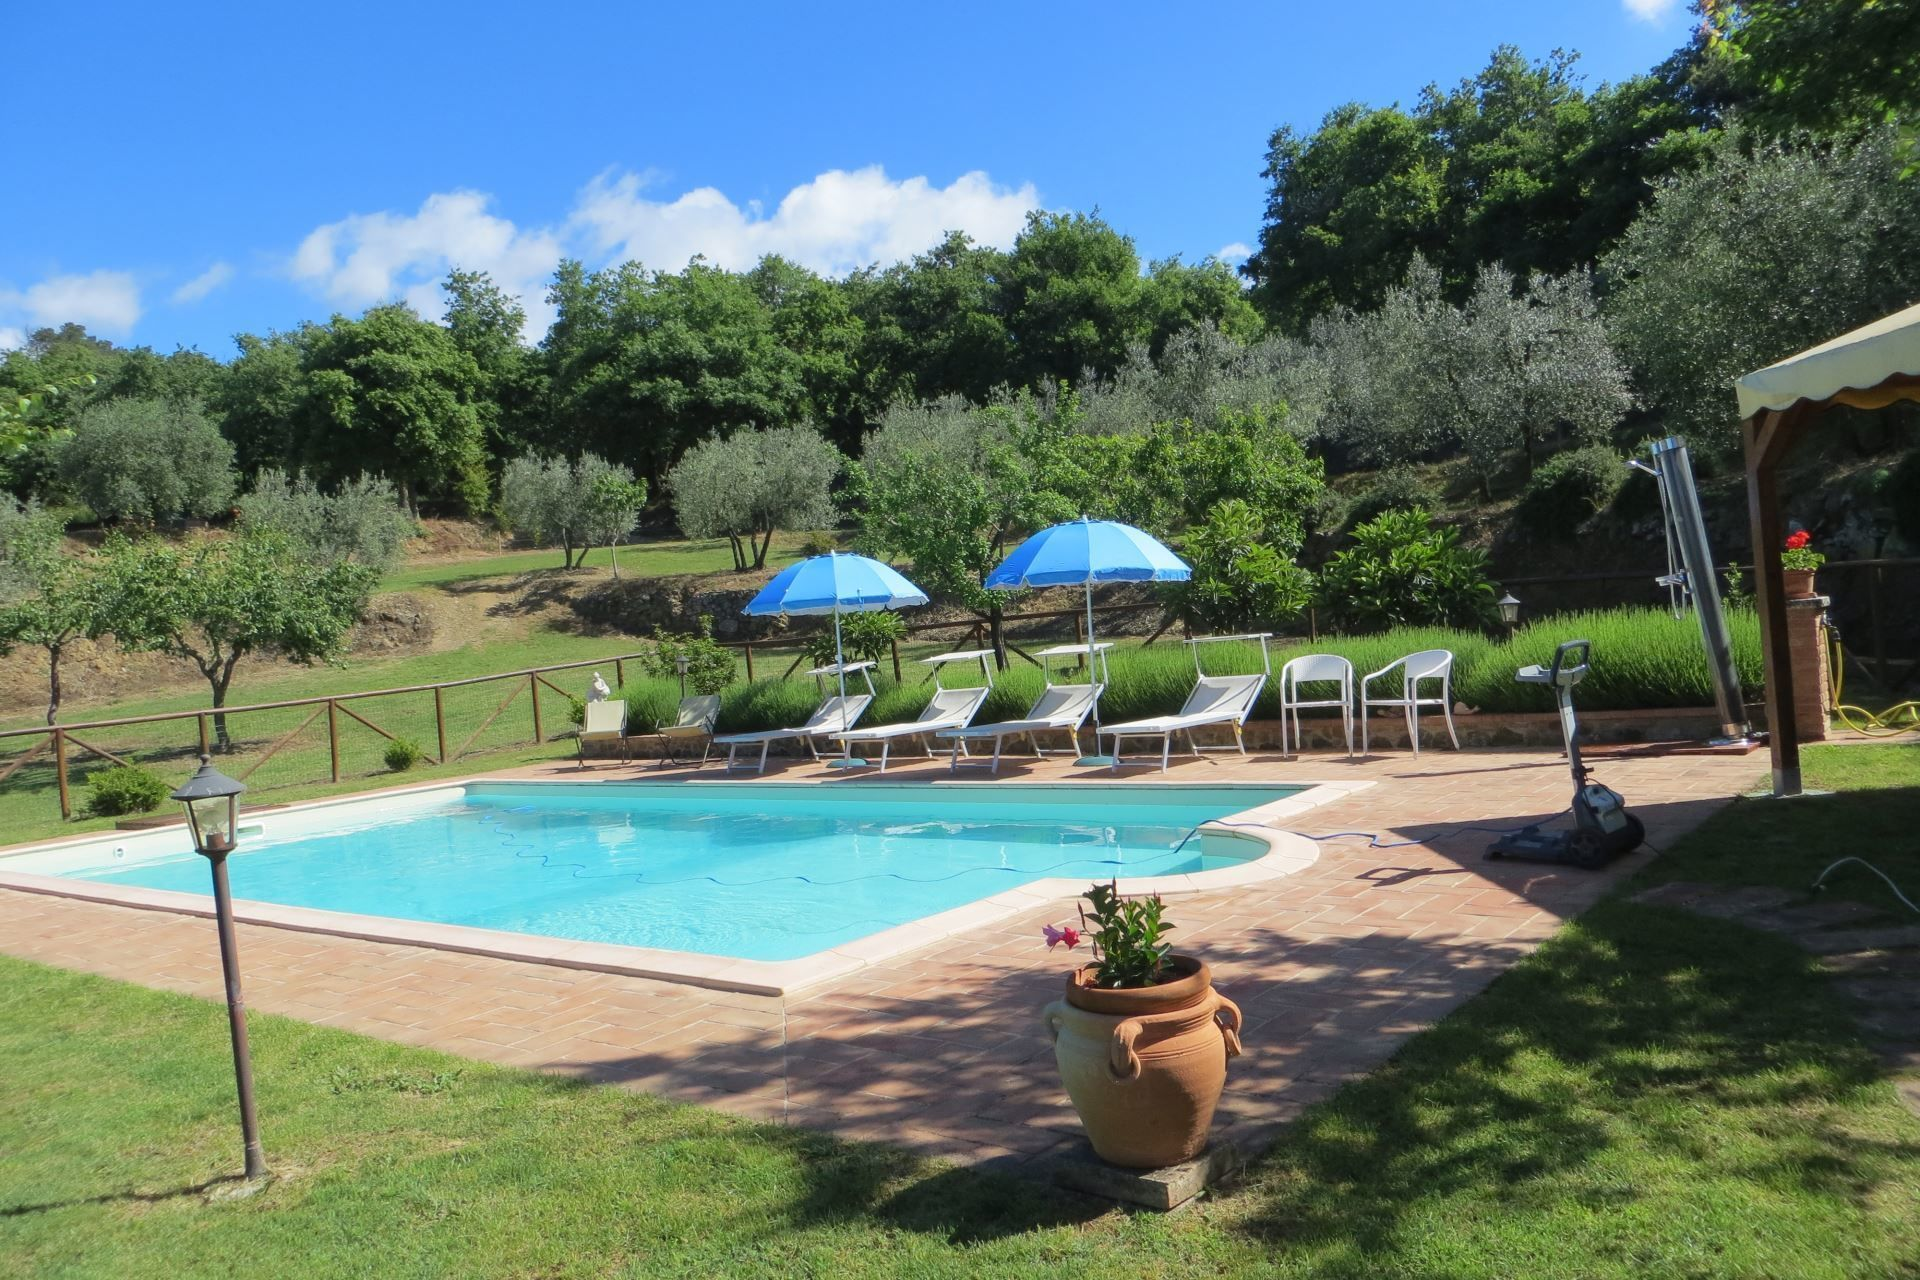 Country House Il Galleto Villa That Sleeps 4 People In 2